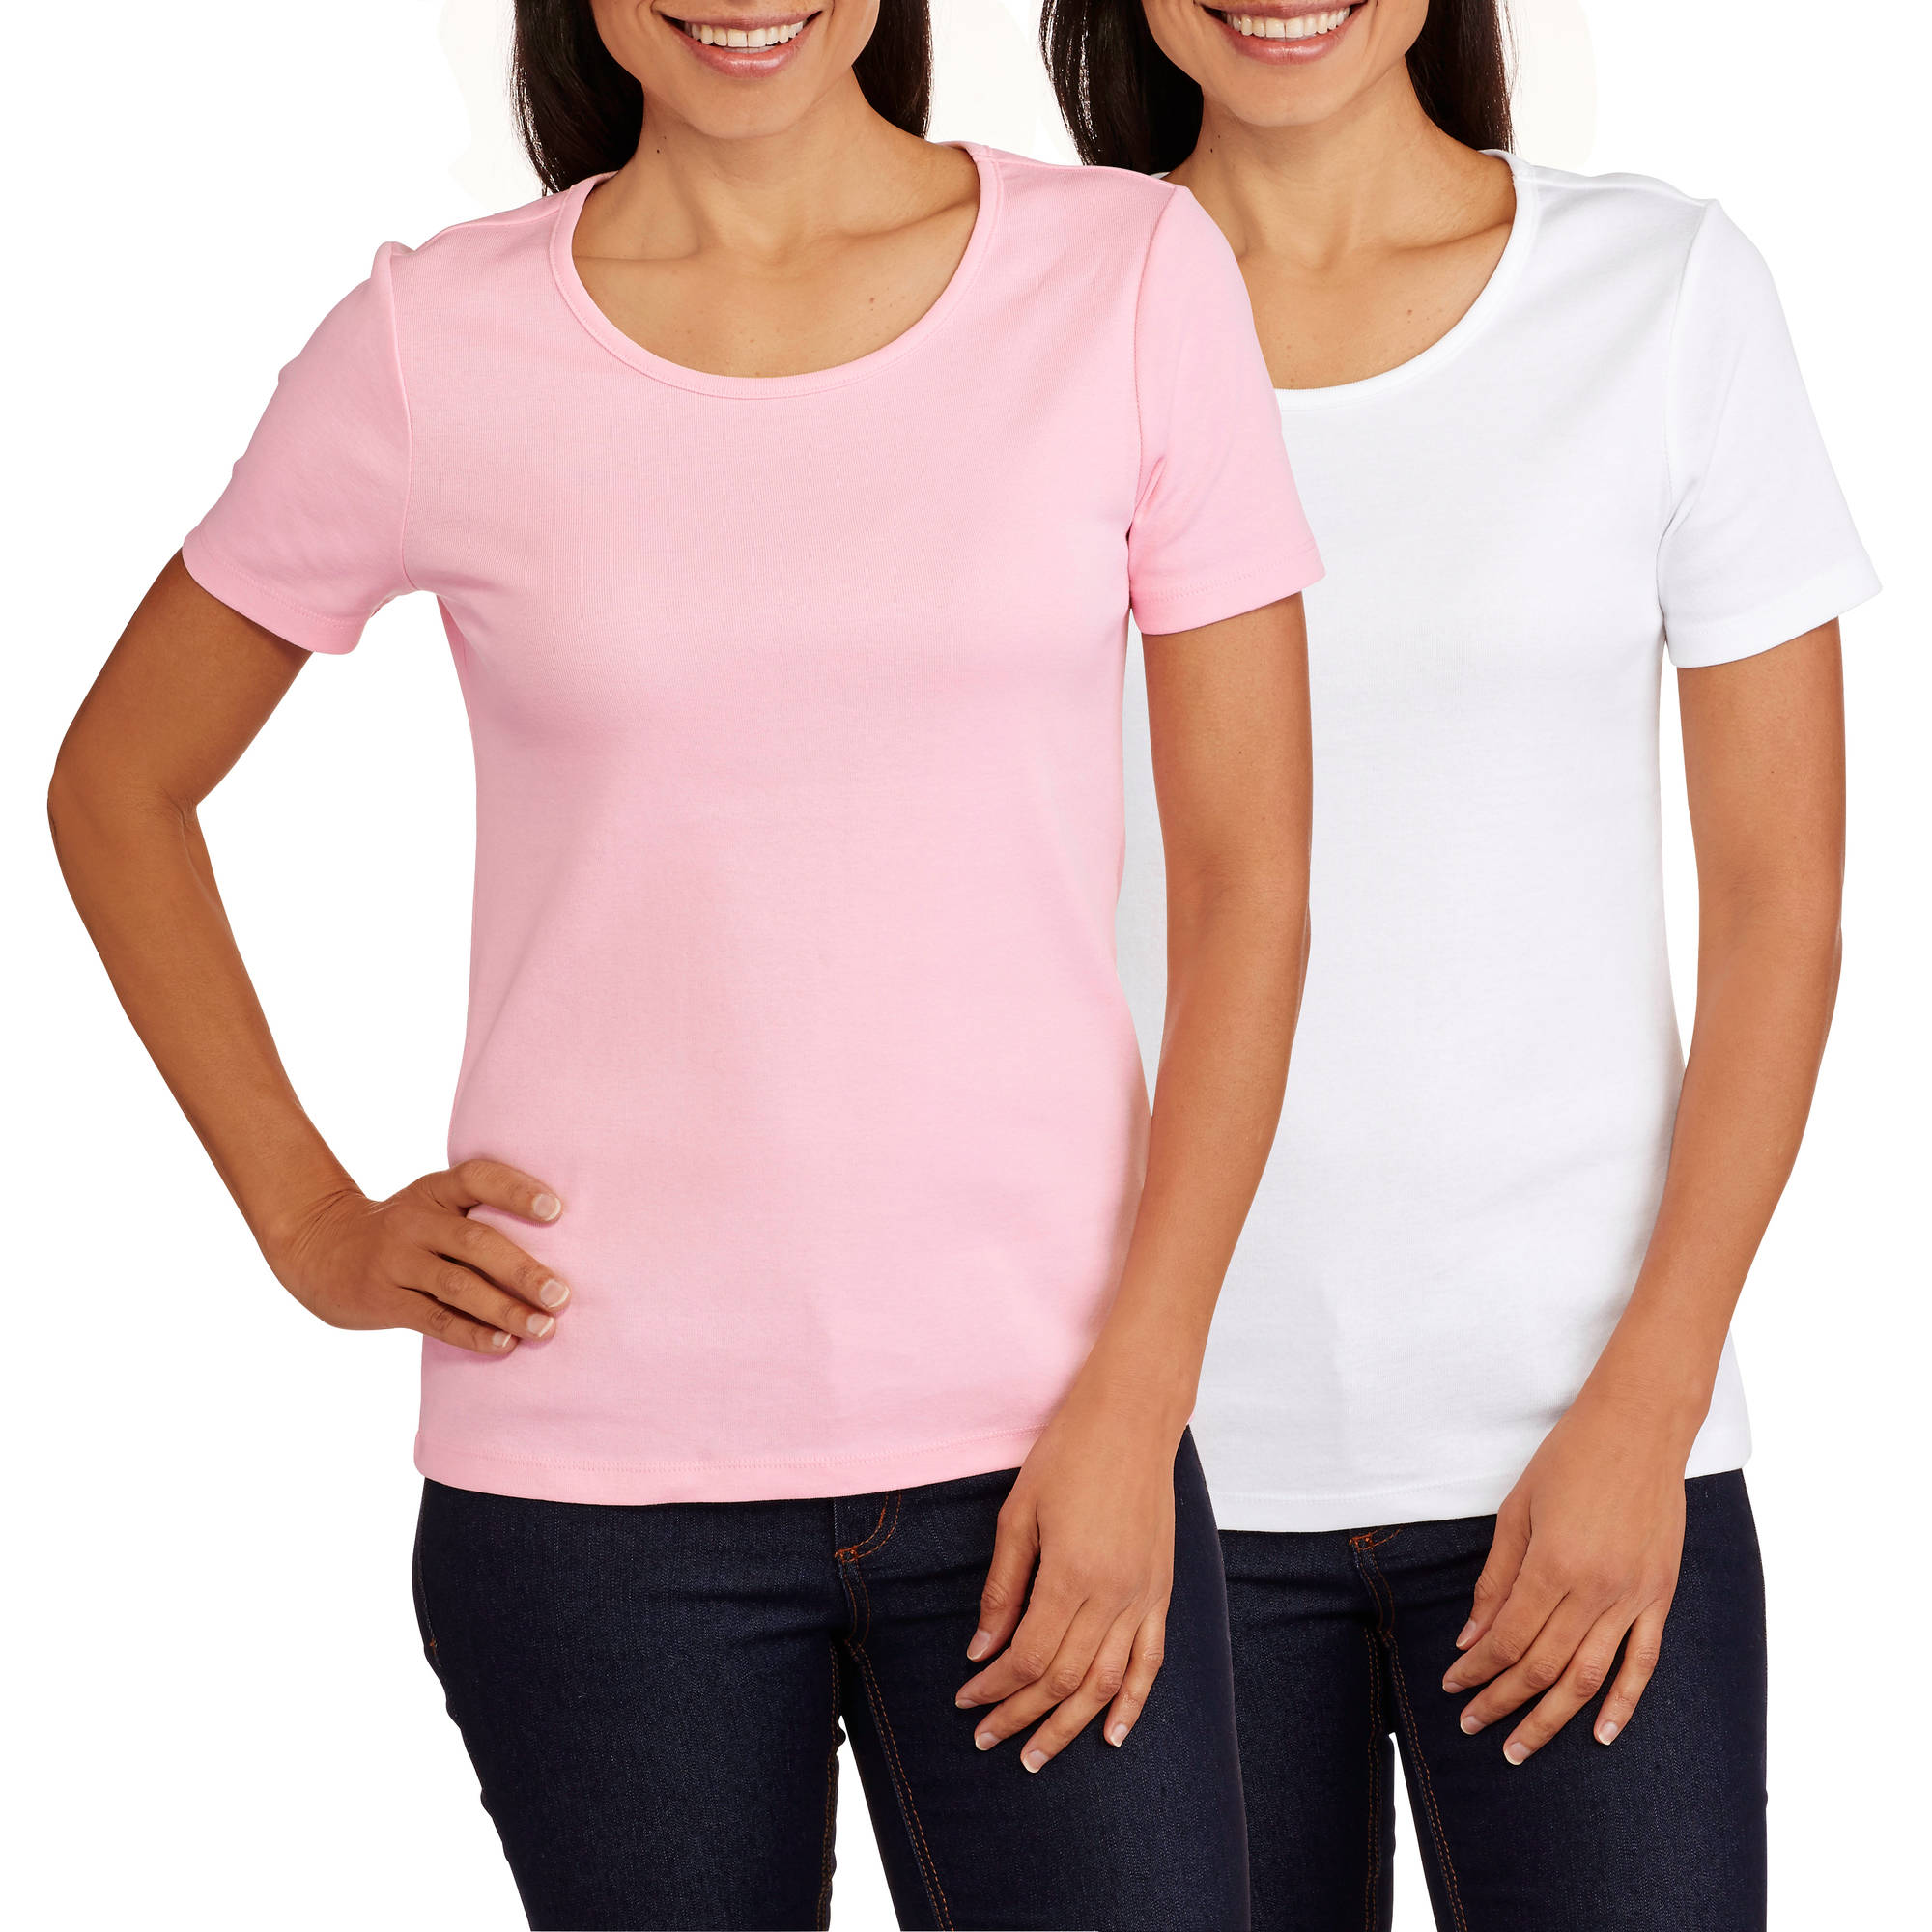 White Stag Women's Short Sleeve Scoop Neck T-Shirt, 2 Pack Value Bundle